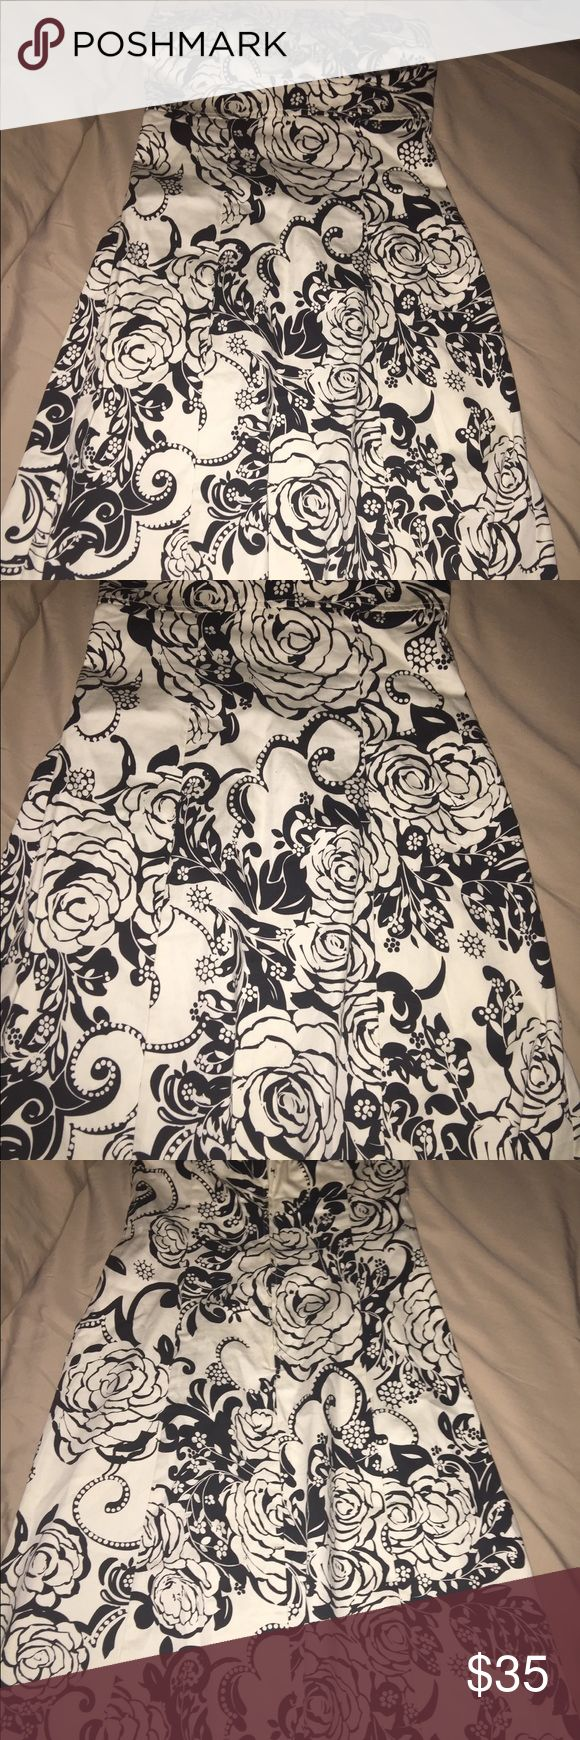 Beautiful Women's Dress Size 5/6 Beautiful knee length women's strapless dress made by B Smart. It's black and white with gorgeous rose accents and detailing in black on a white background. The dress is a size 5/6 and is in excellent condition. Zip closure in the back. From a pet free smoke free home. b smart Dresses Strapless